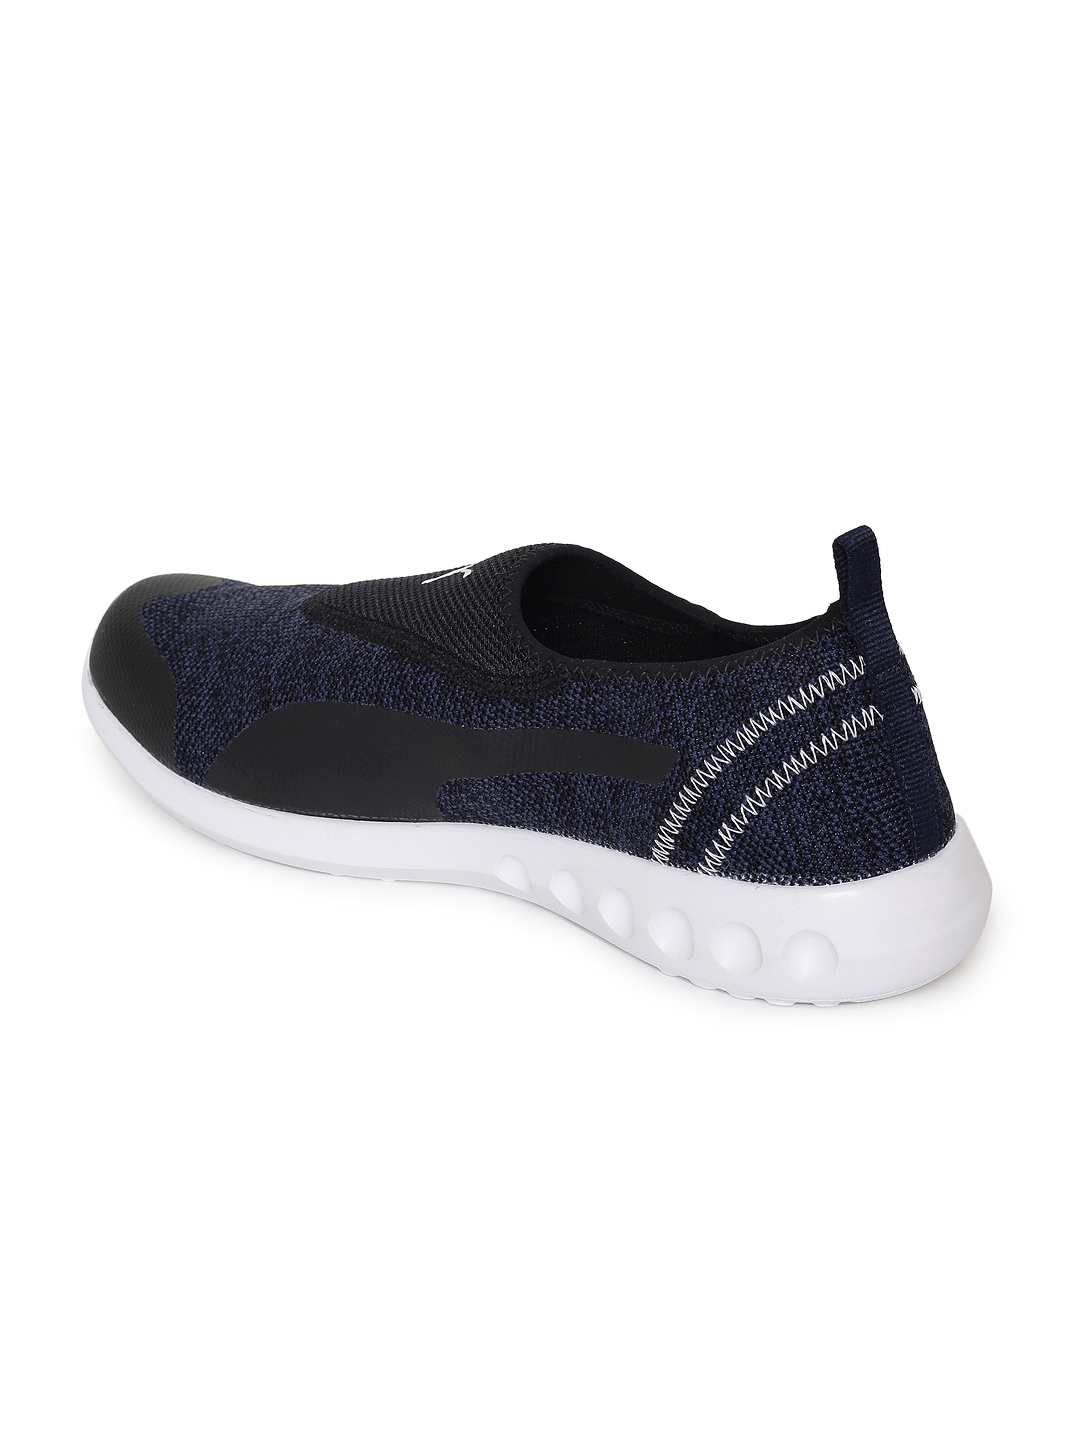 fa441f16d56 Buy Puma Men Navy Blue Solid Concave 2 Slip On IDP Walking Shoes ...